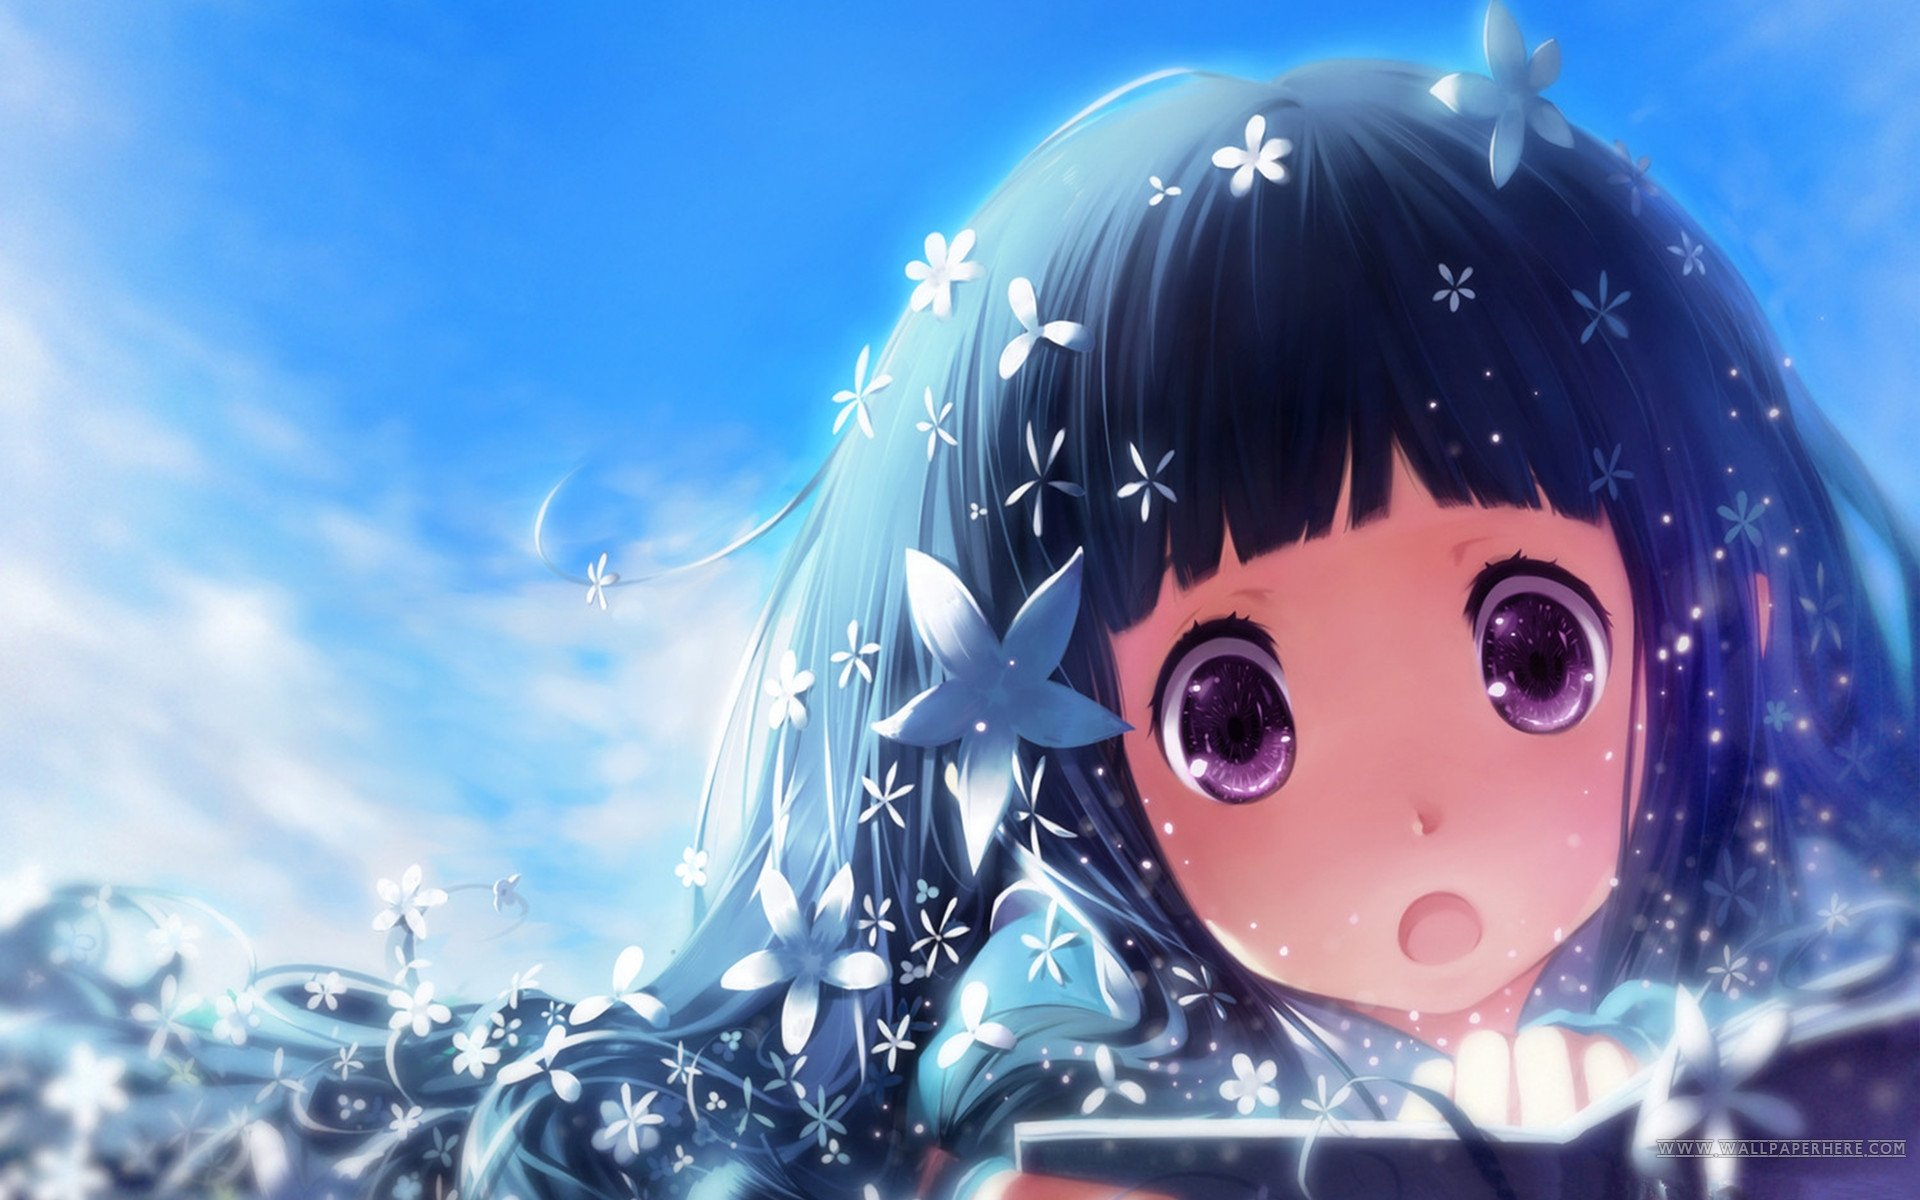 Collection of Beautiful Anime Wallpaper on HDWallpapers